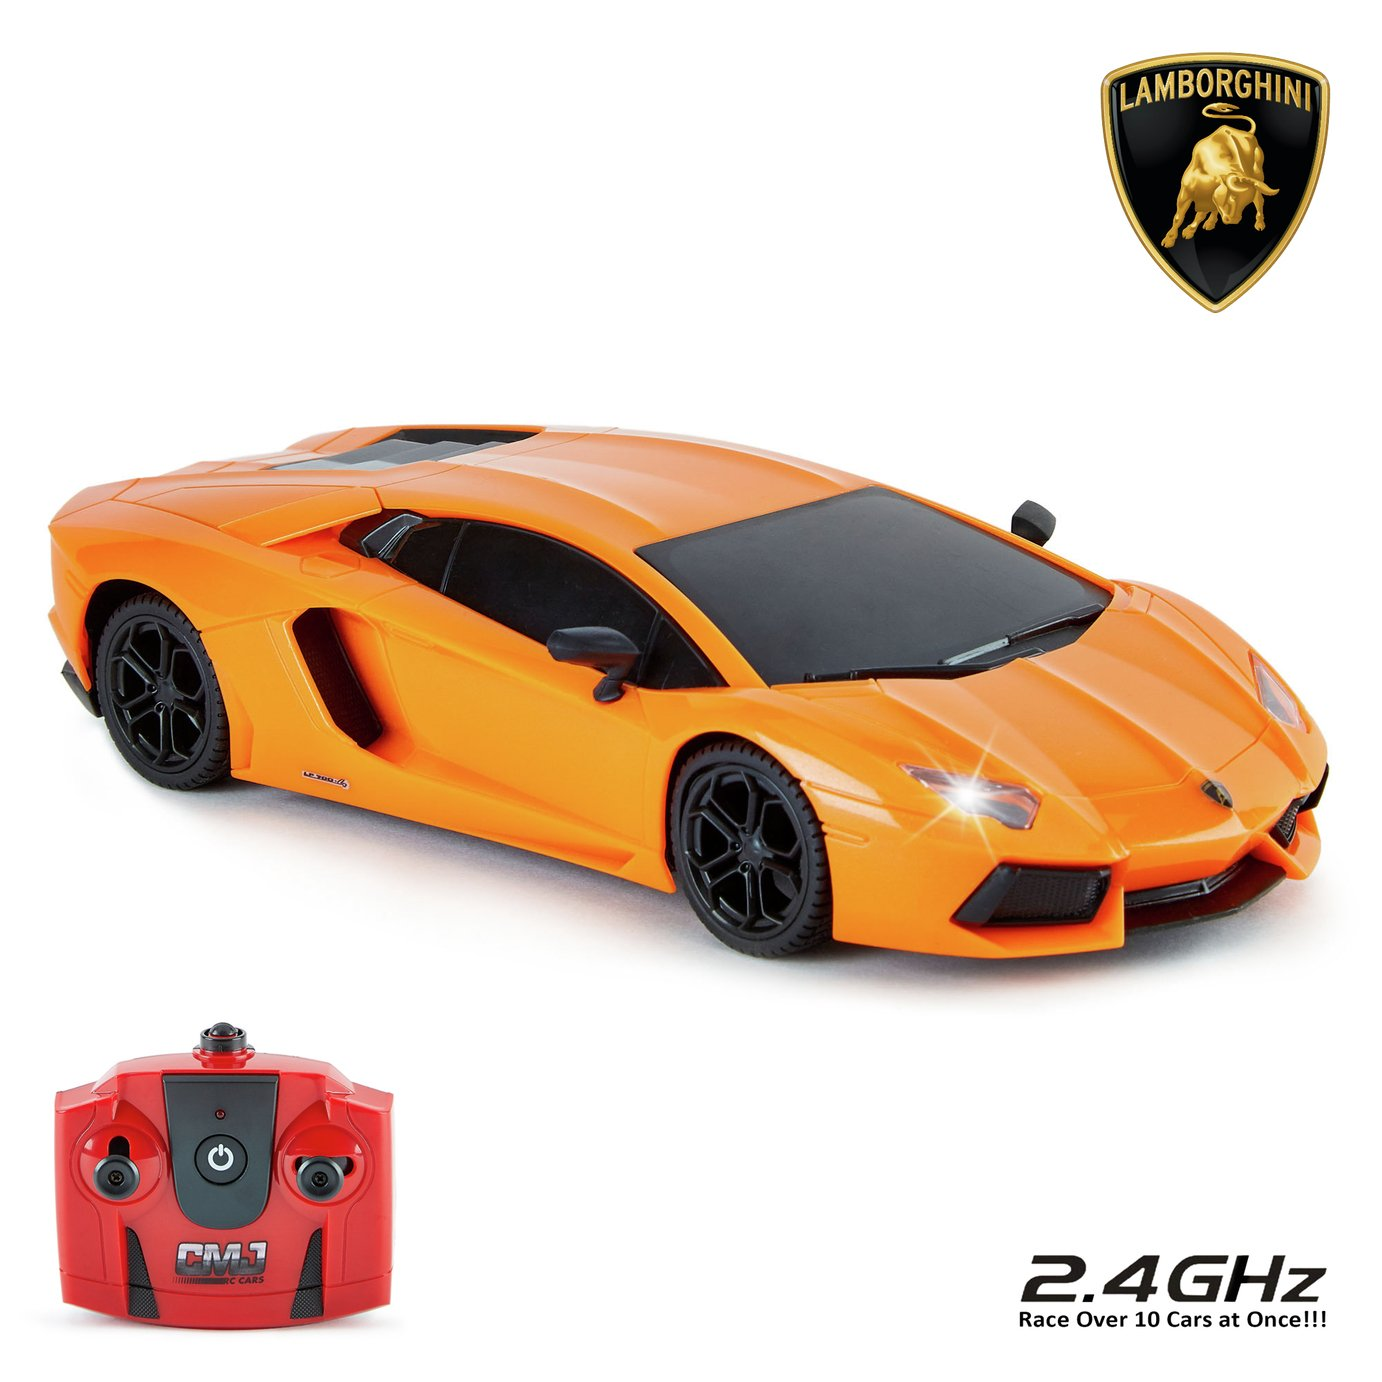 Lamborghini Aventador Remote Control Car 1:24 Orange 2.4Ghz